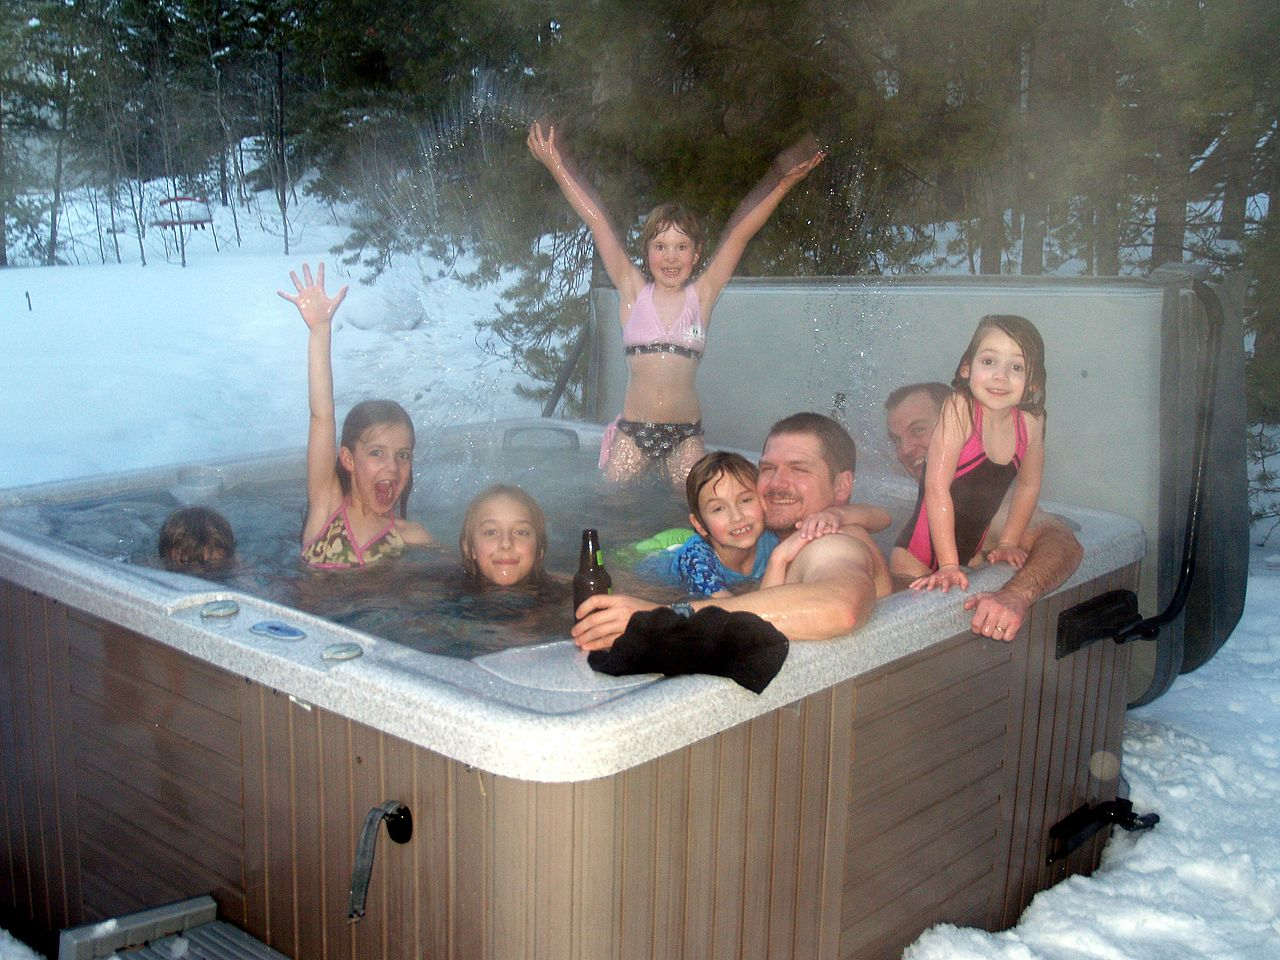 File keystone day 1 photo wikimedia commons for Types of hot tubs